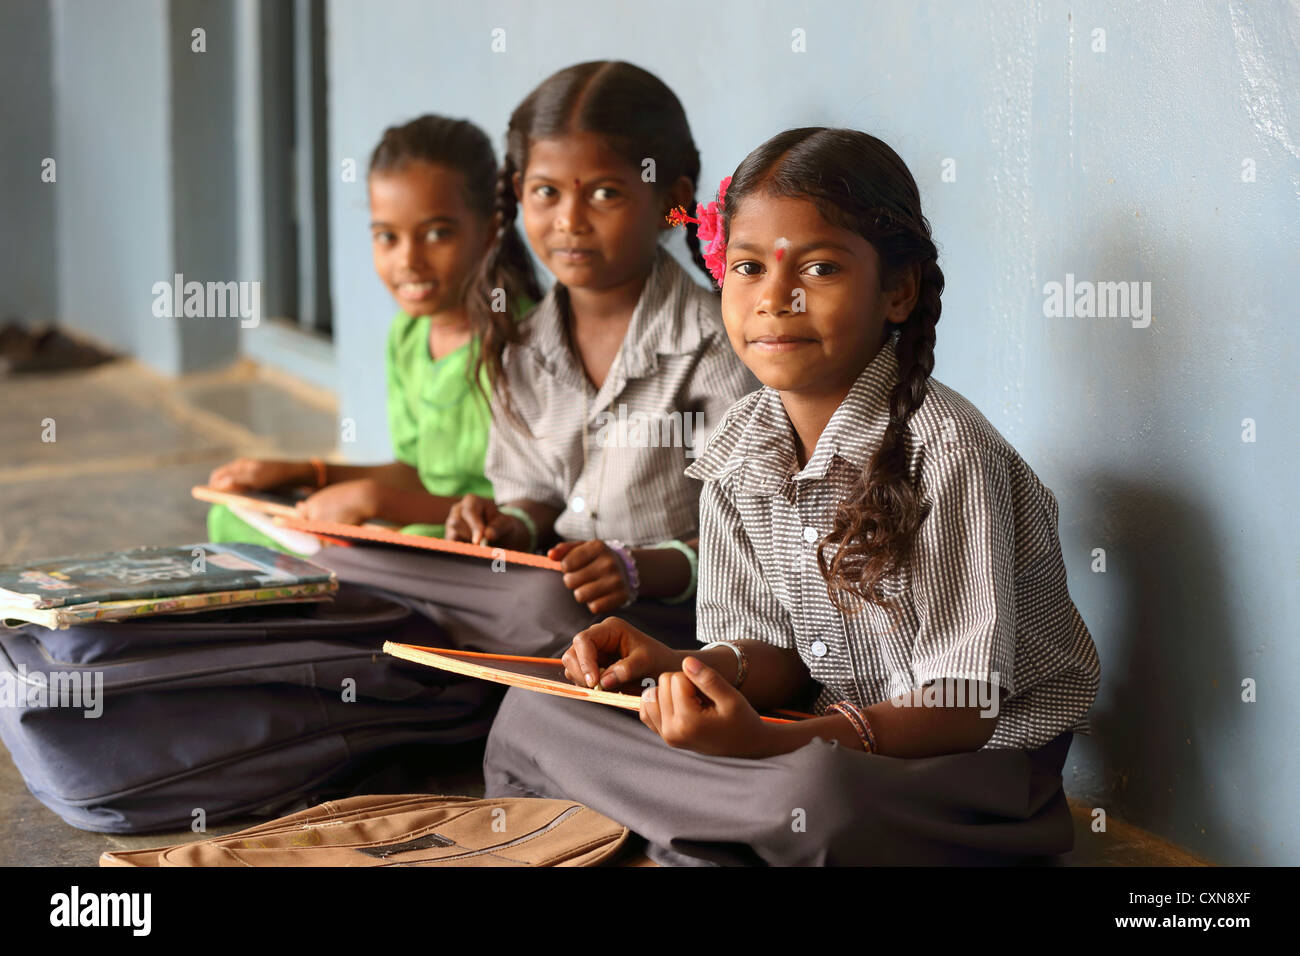 essay for school children india This essay on republic day of india for school children is historical data, nick vujicic essay not current) country poverty line (per day) year reference essay on.